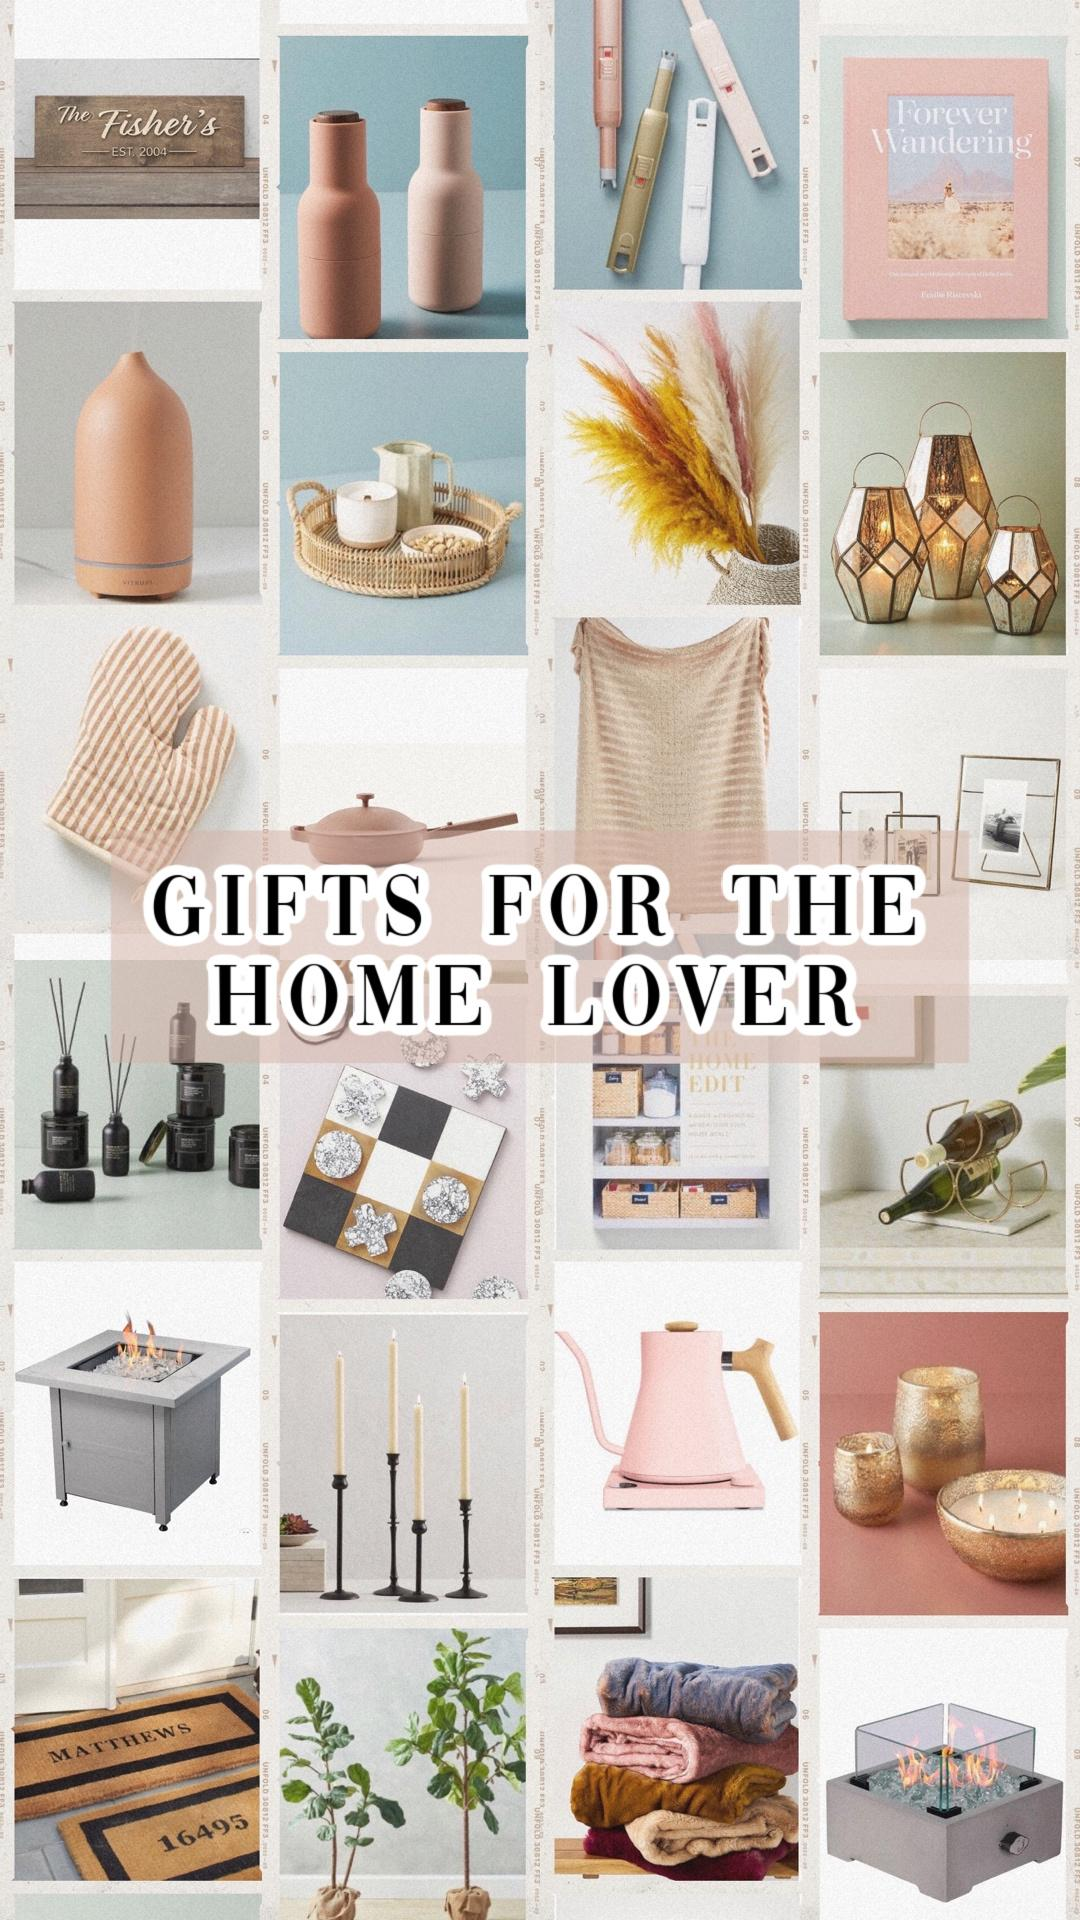 GIFTS FOR THE HOME LOVER / NEWLY WED